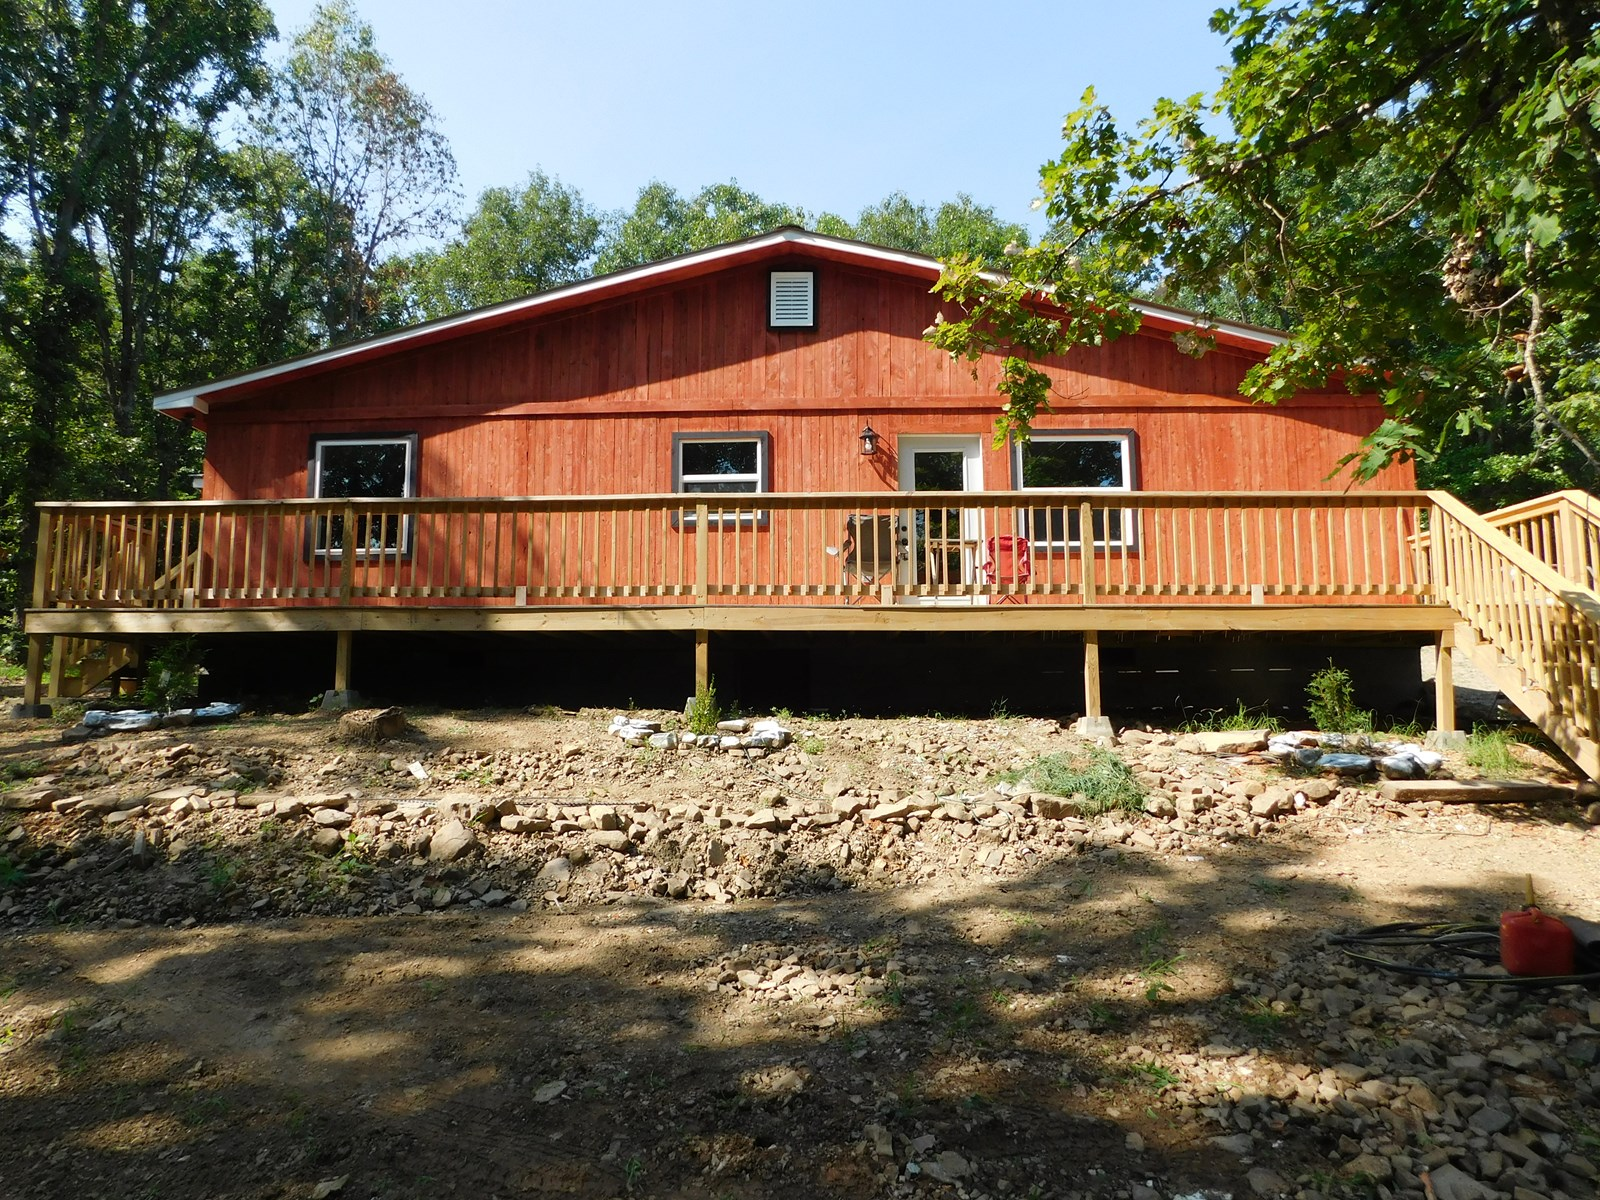 New Construction Home in Rural Washington County For Sale